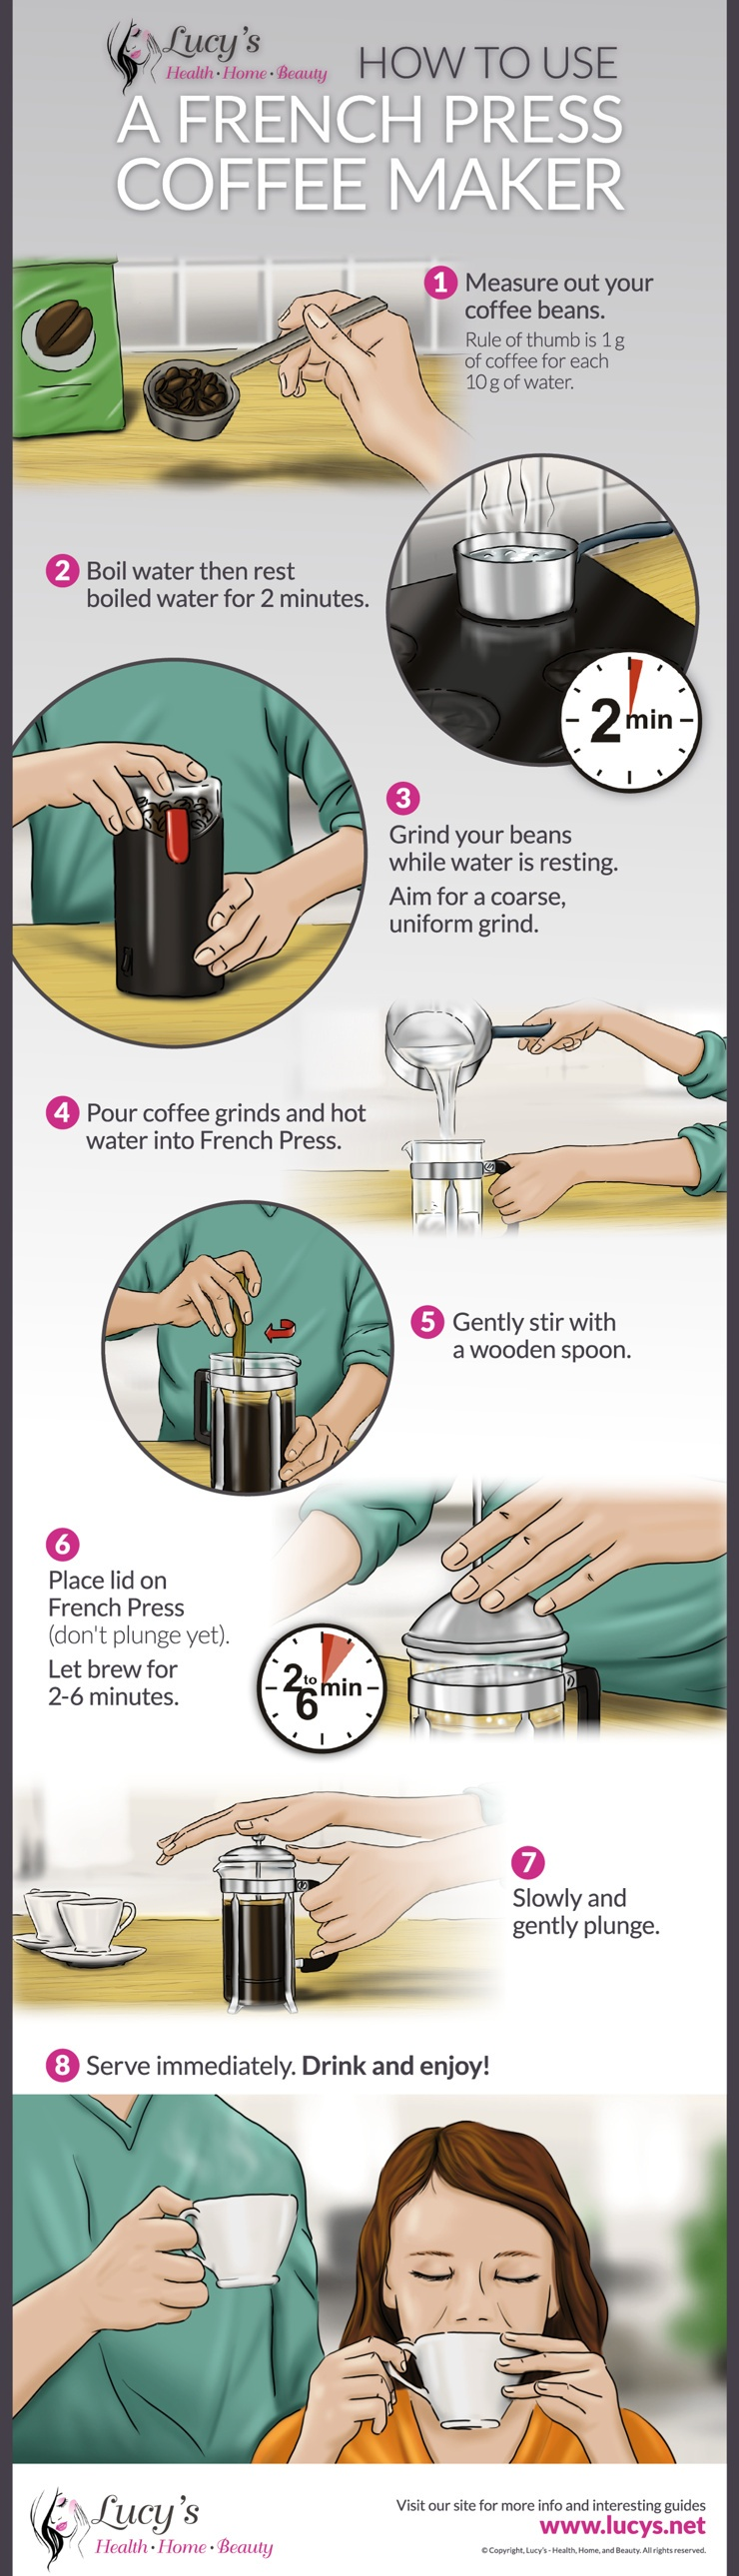 Infographic showing how to use a french press coffee maker